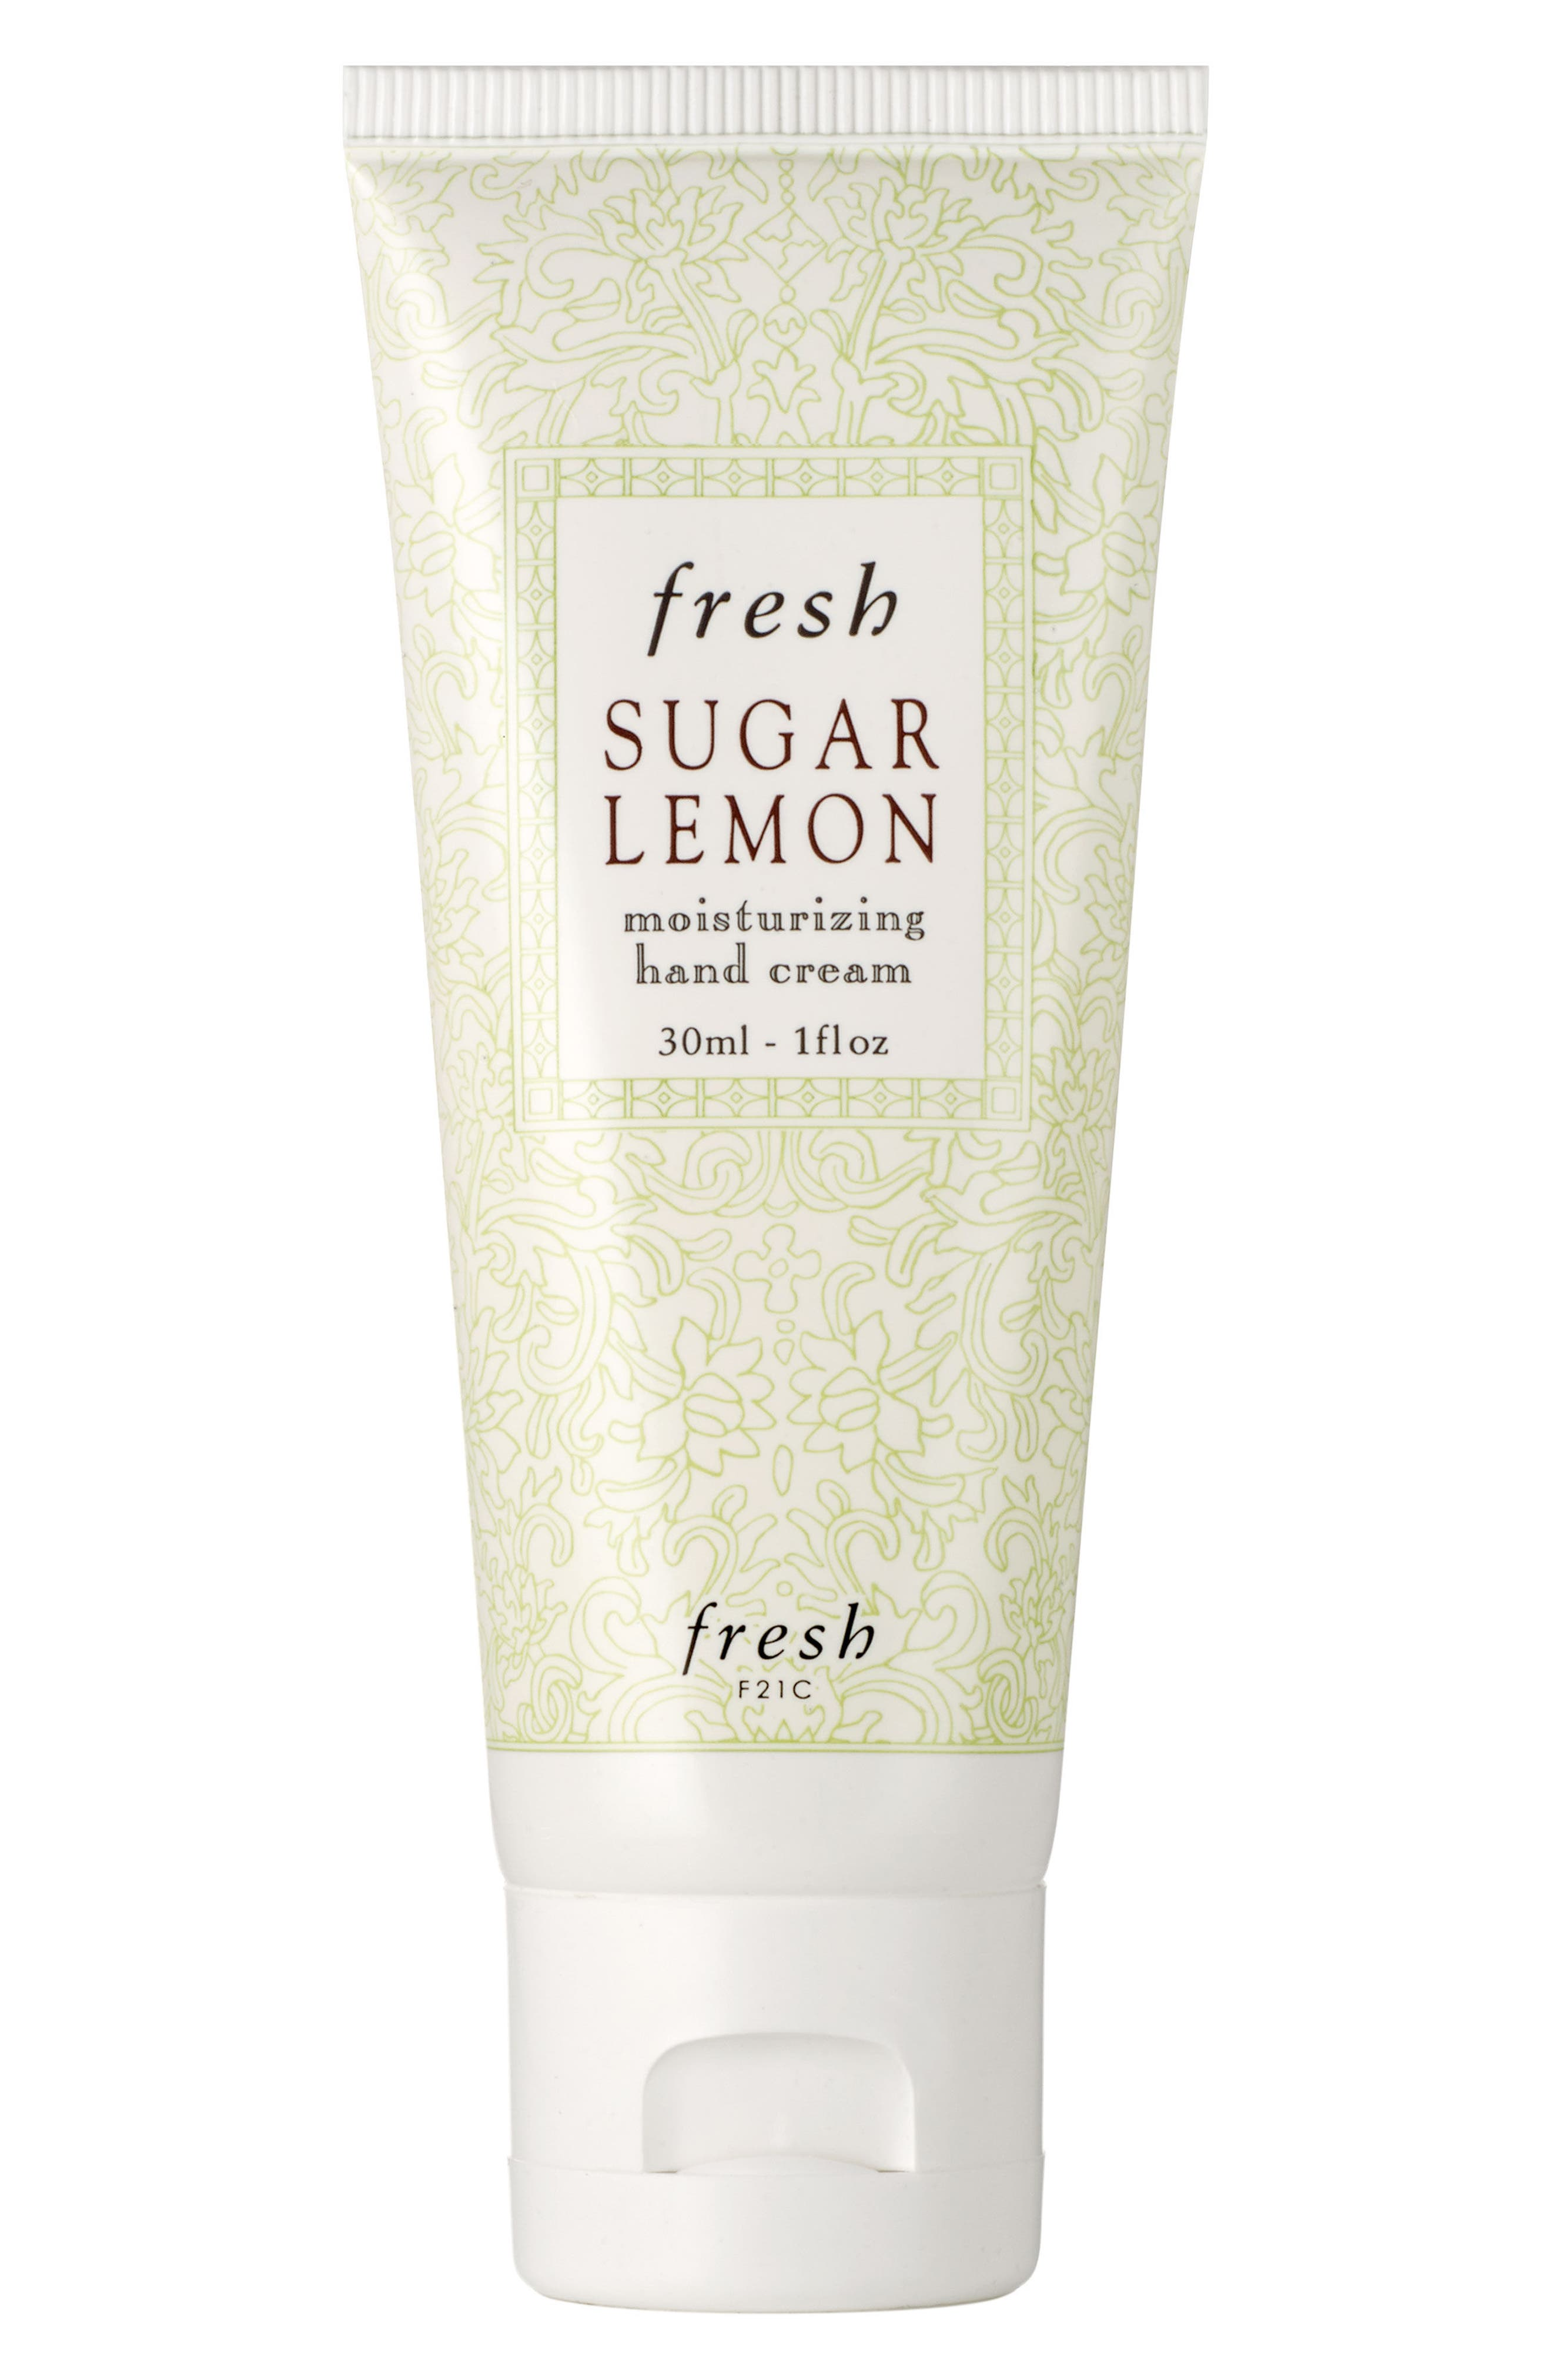 What it is: A fast-absorbing, nourishing hand cream that softens skin and protects against dryness while leaving behind a subtle scent. What it does: It\\\'s fortified with a trio of emollient butters that help retain moisture while protecting against dryness to keep hands silky-soft and smooth. The rich, buttery cream is specially formulated to absorb quickly with no sticky after-feel. Cupuacu, sal seed and shea butters help moisturize hands for